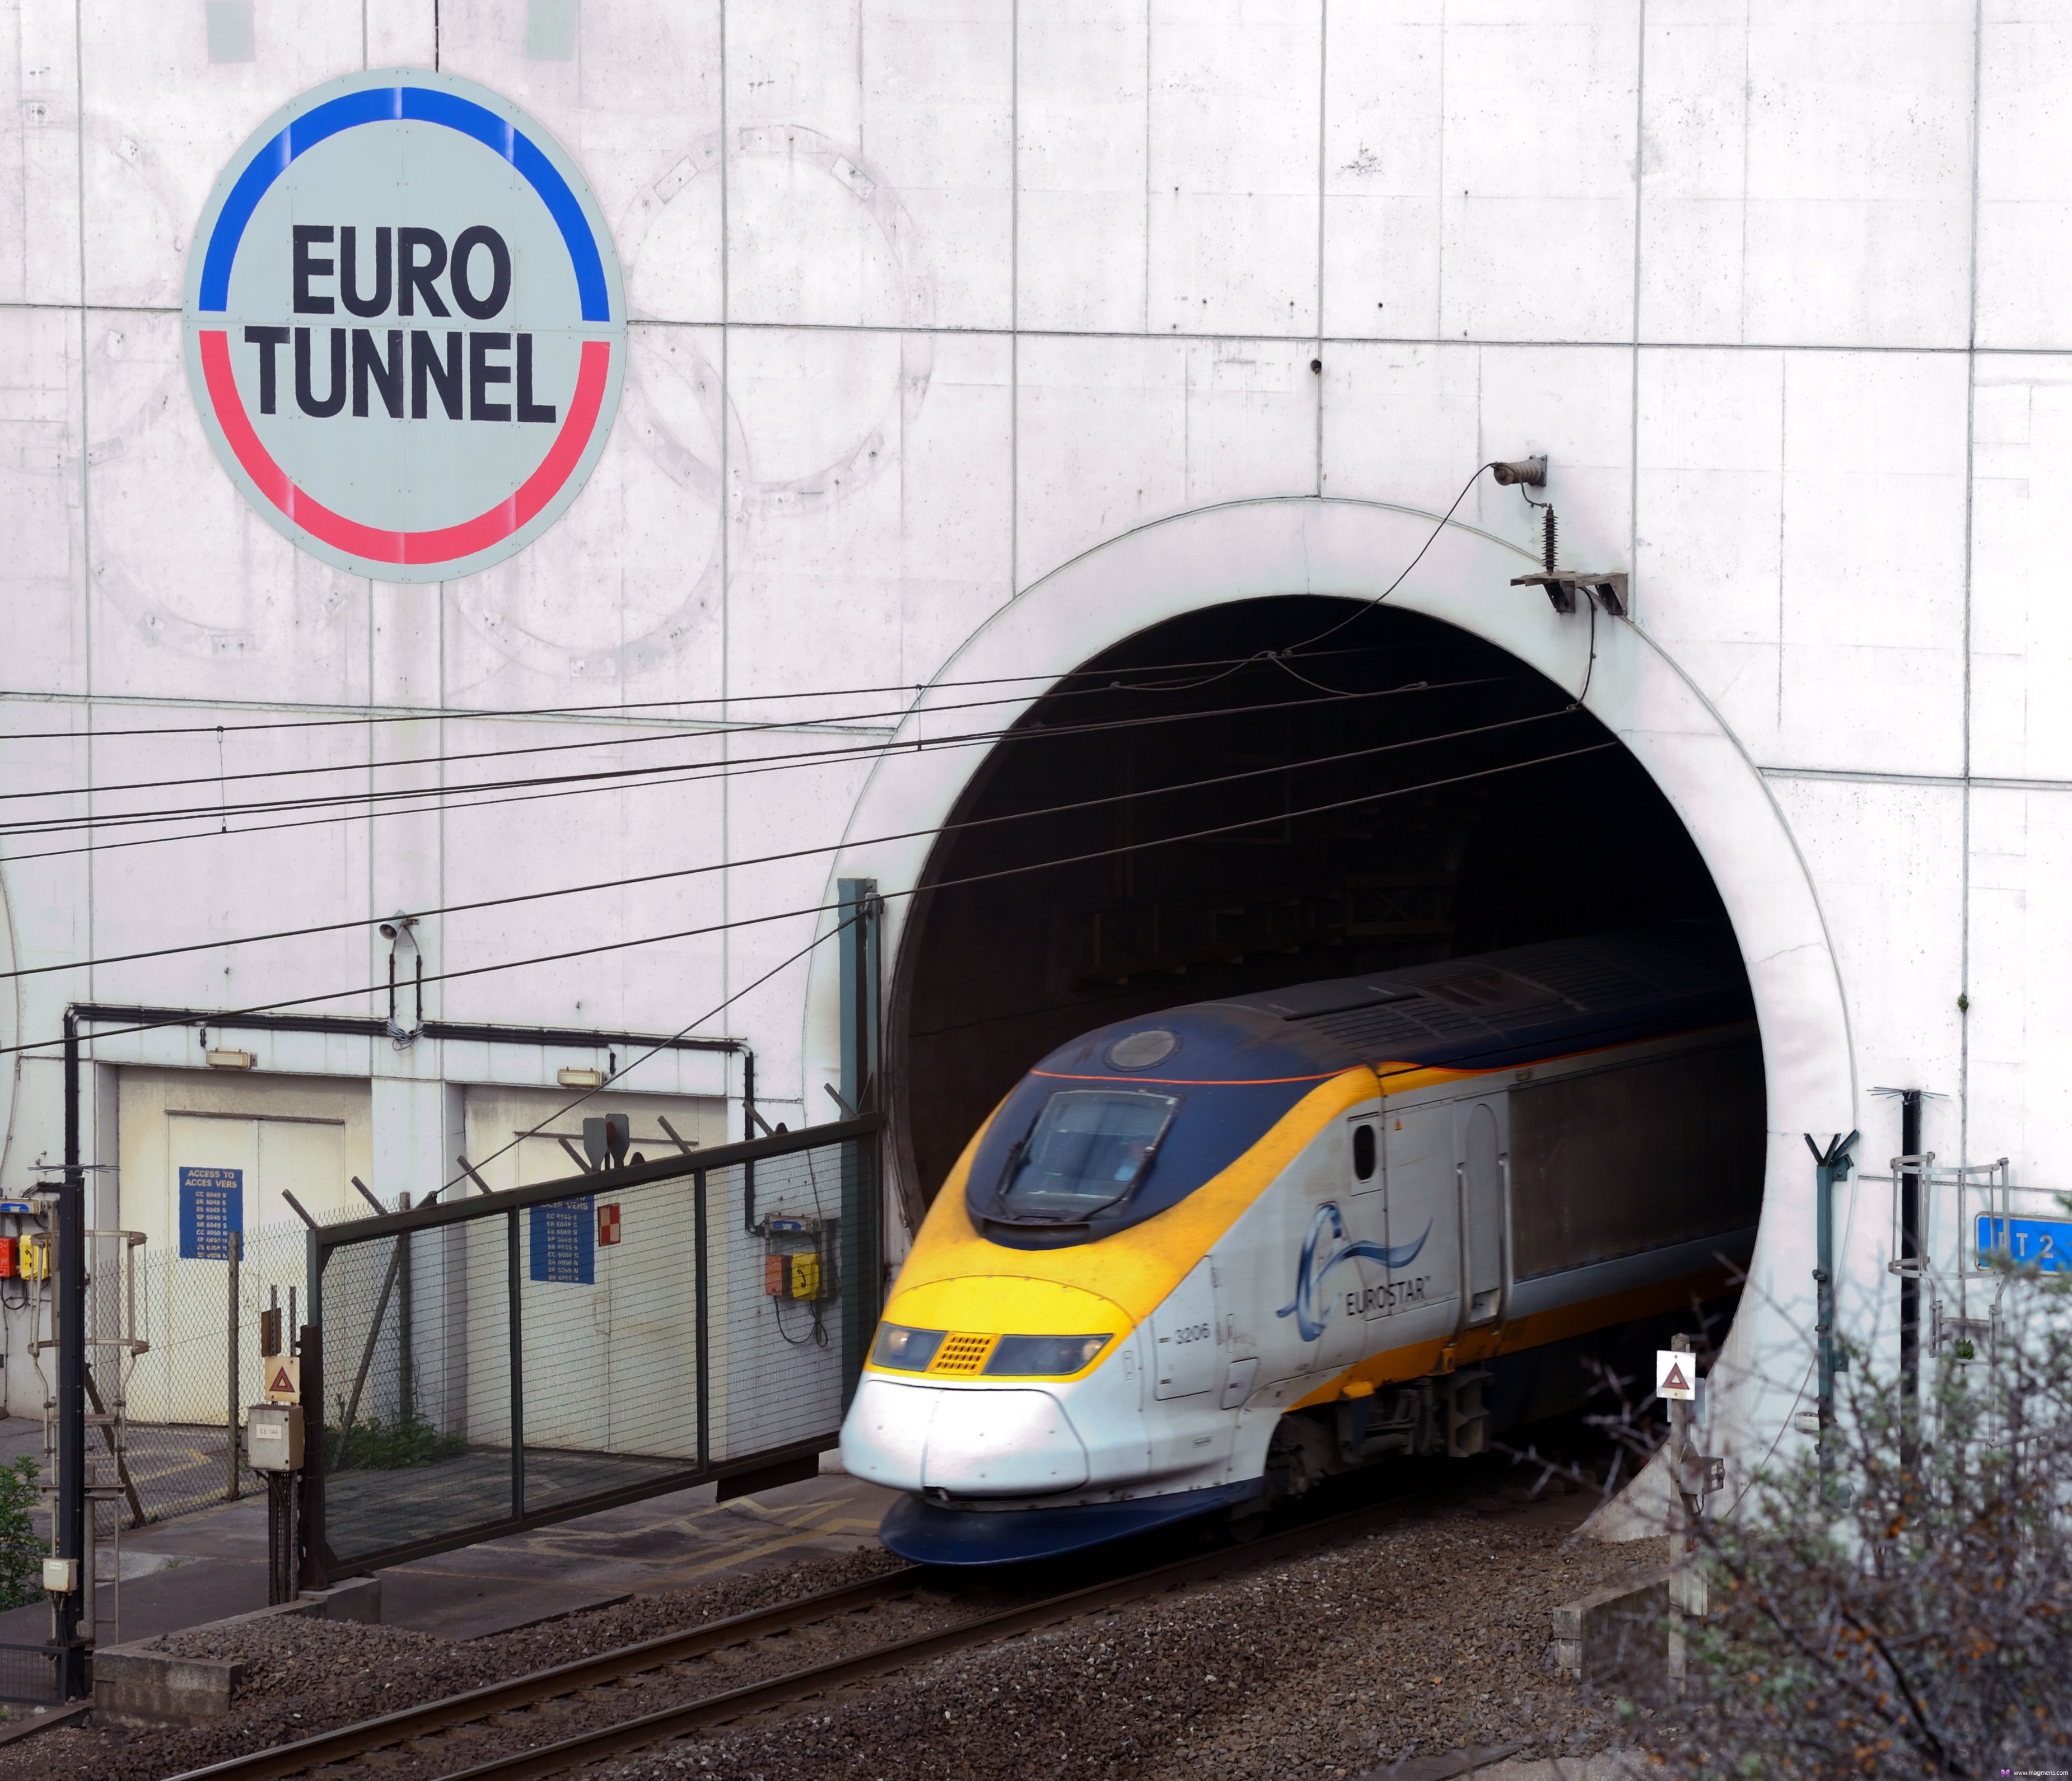 euro tunnel Travel through euro tunnel from uk to france the channel tunnel is a 505-kilometre (314 mi) undersea rail tunnelat its lowest point, it is 75 metres (250.